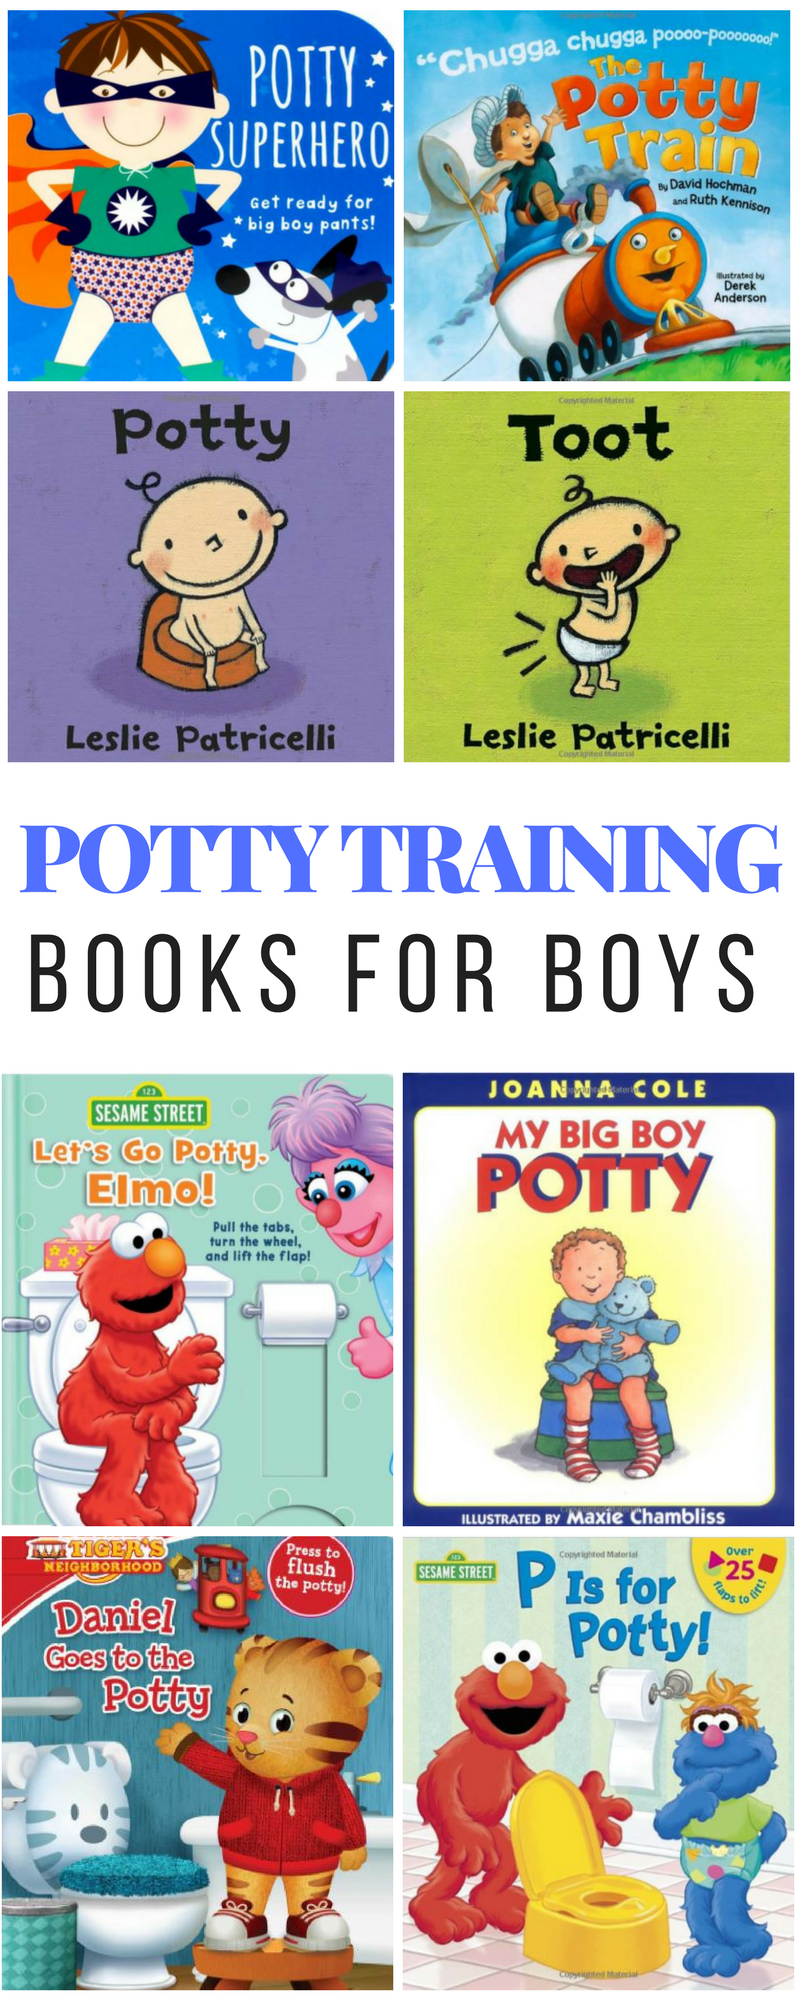 how to potty train a boy in 3 days / potty training tips for girls / potty training boys age 2 / what age to start potty training / potty training boys age 3 / how to potty train a toddler / potty training problems / potty training schedule